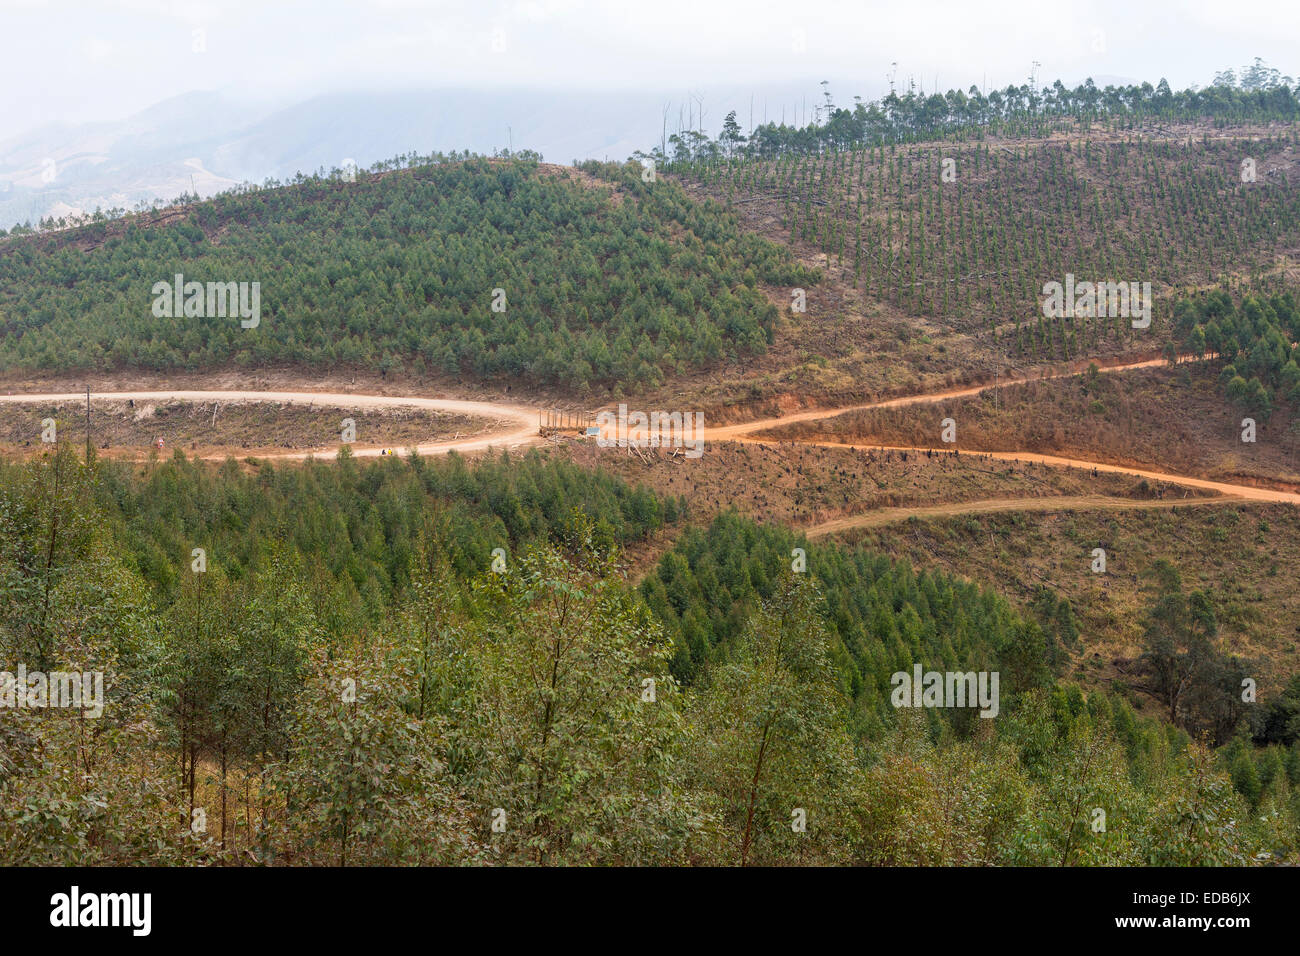 SWAZILAND, AFRICA - Roads through timber industry in Hhohho District - Stock Image